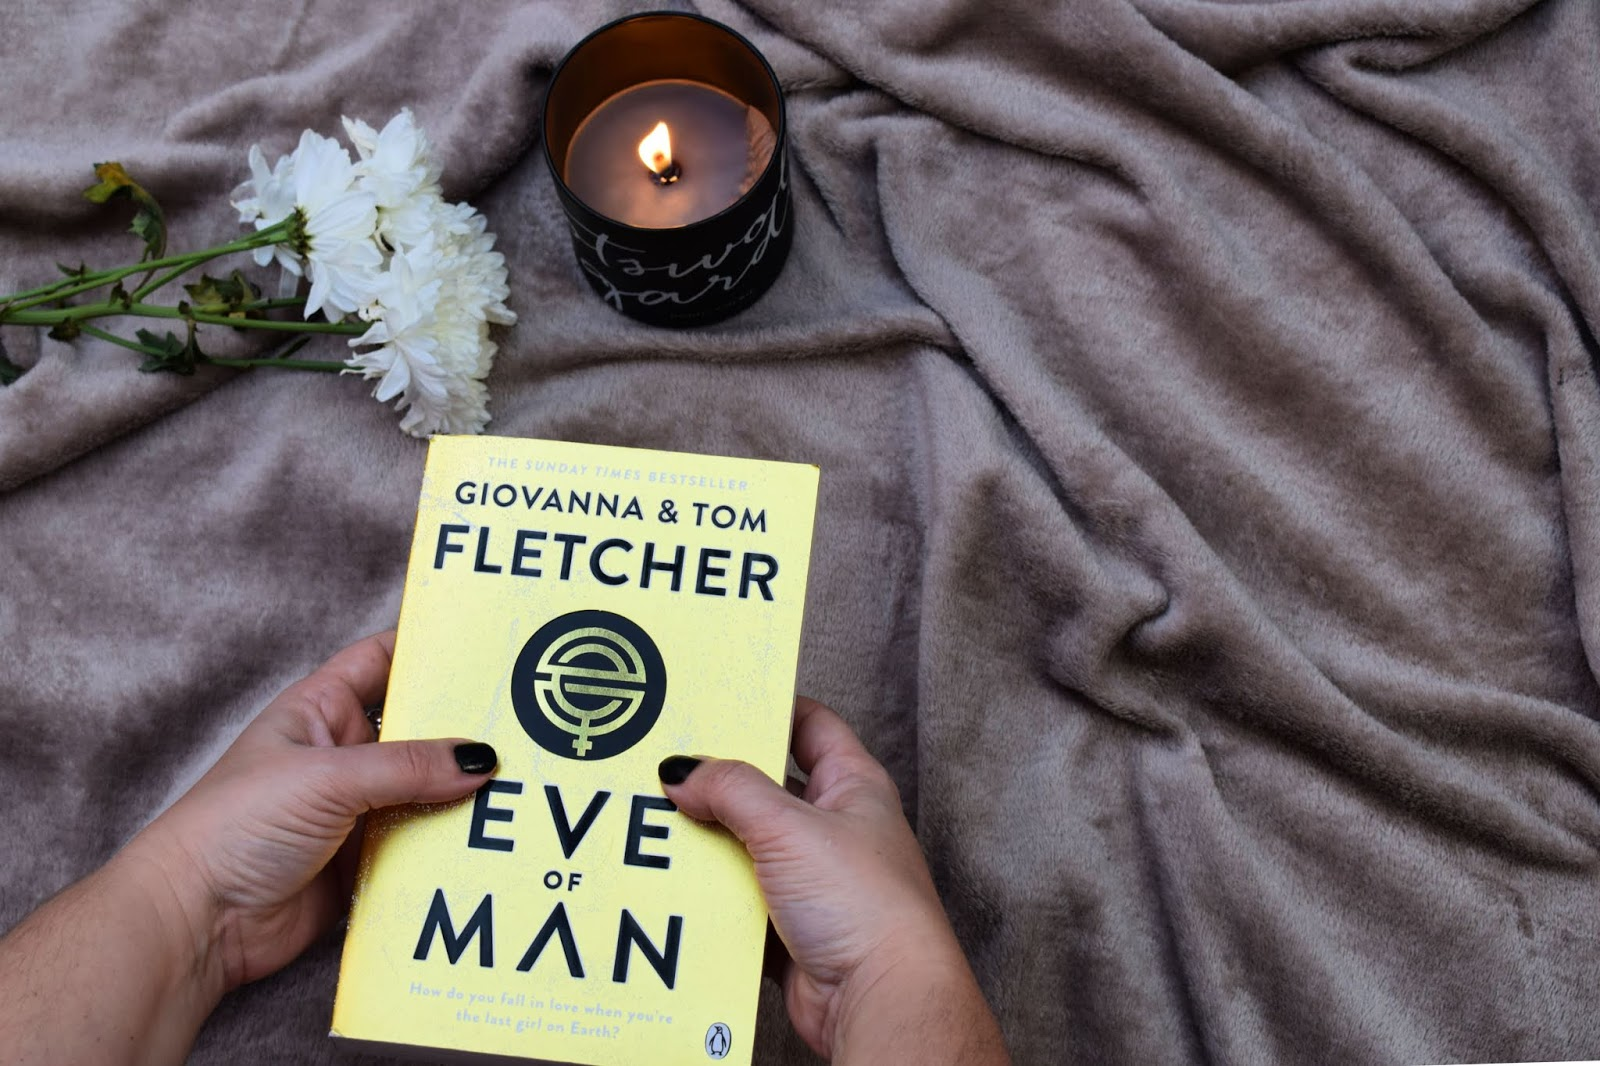 Book review Eve of Man - Giovanna & Tom Fletcher